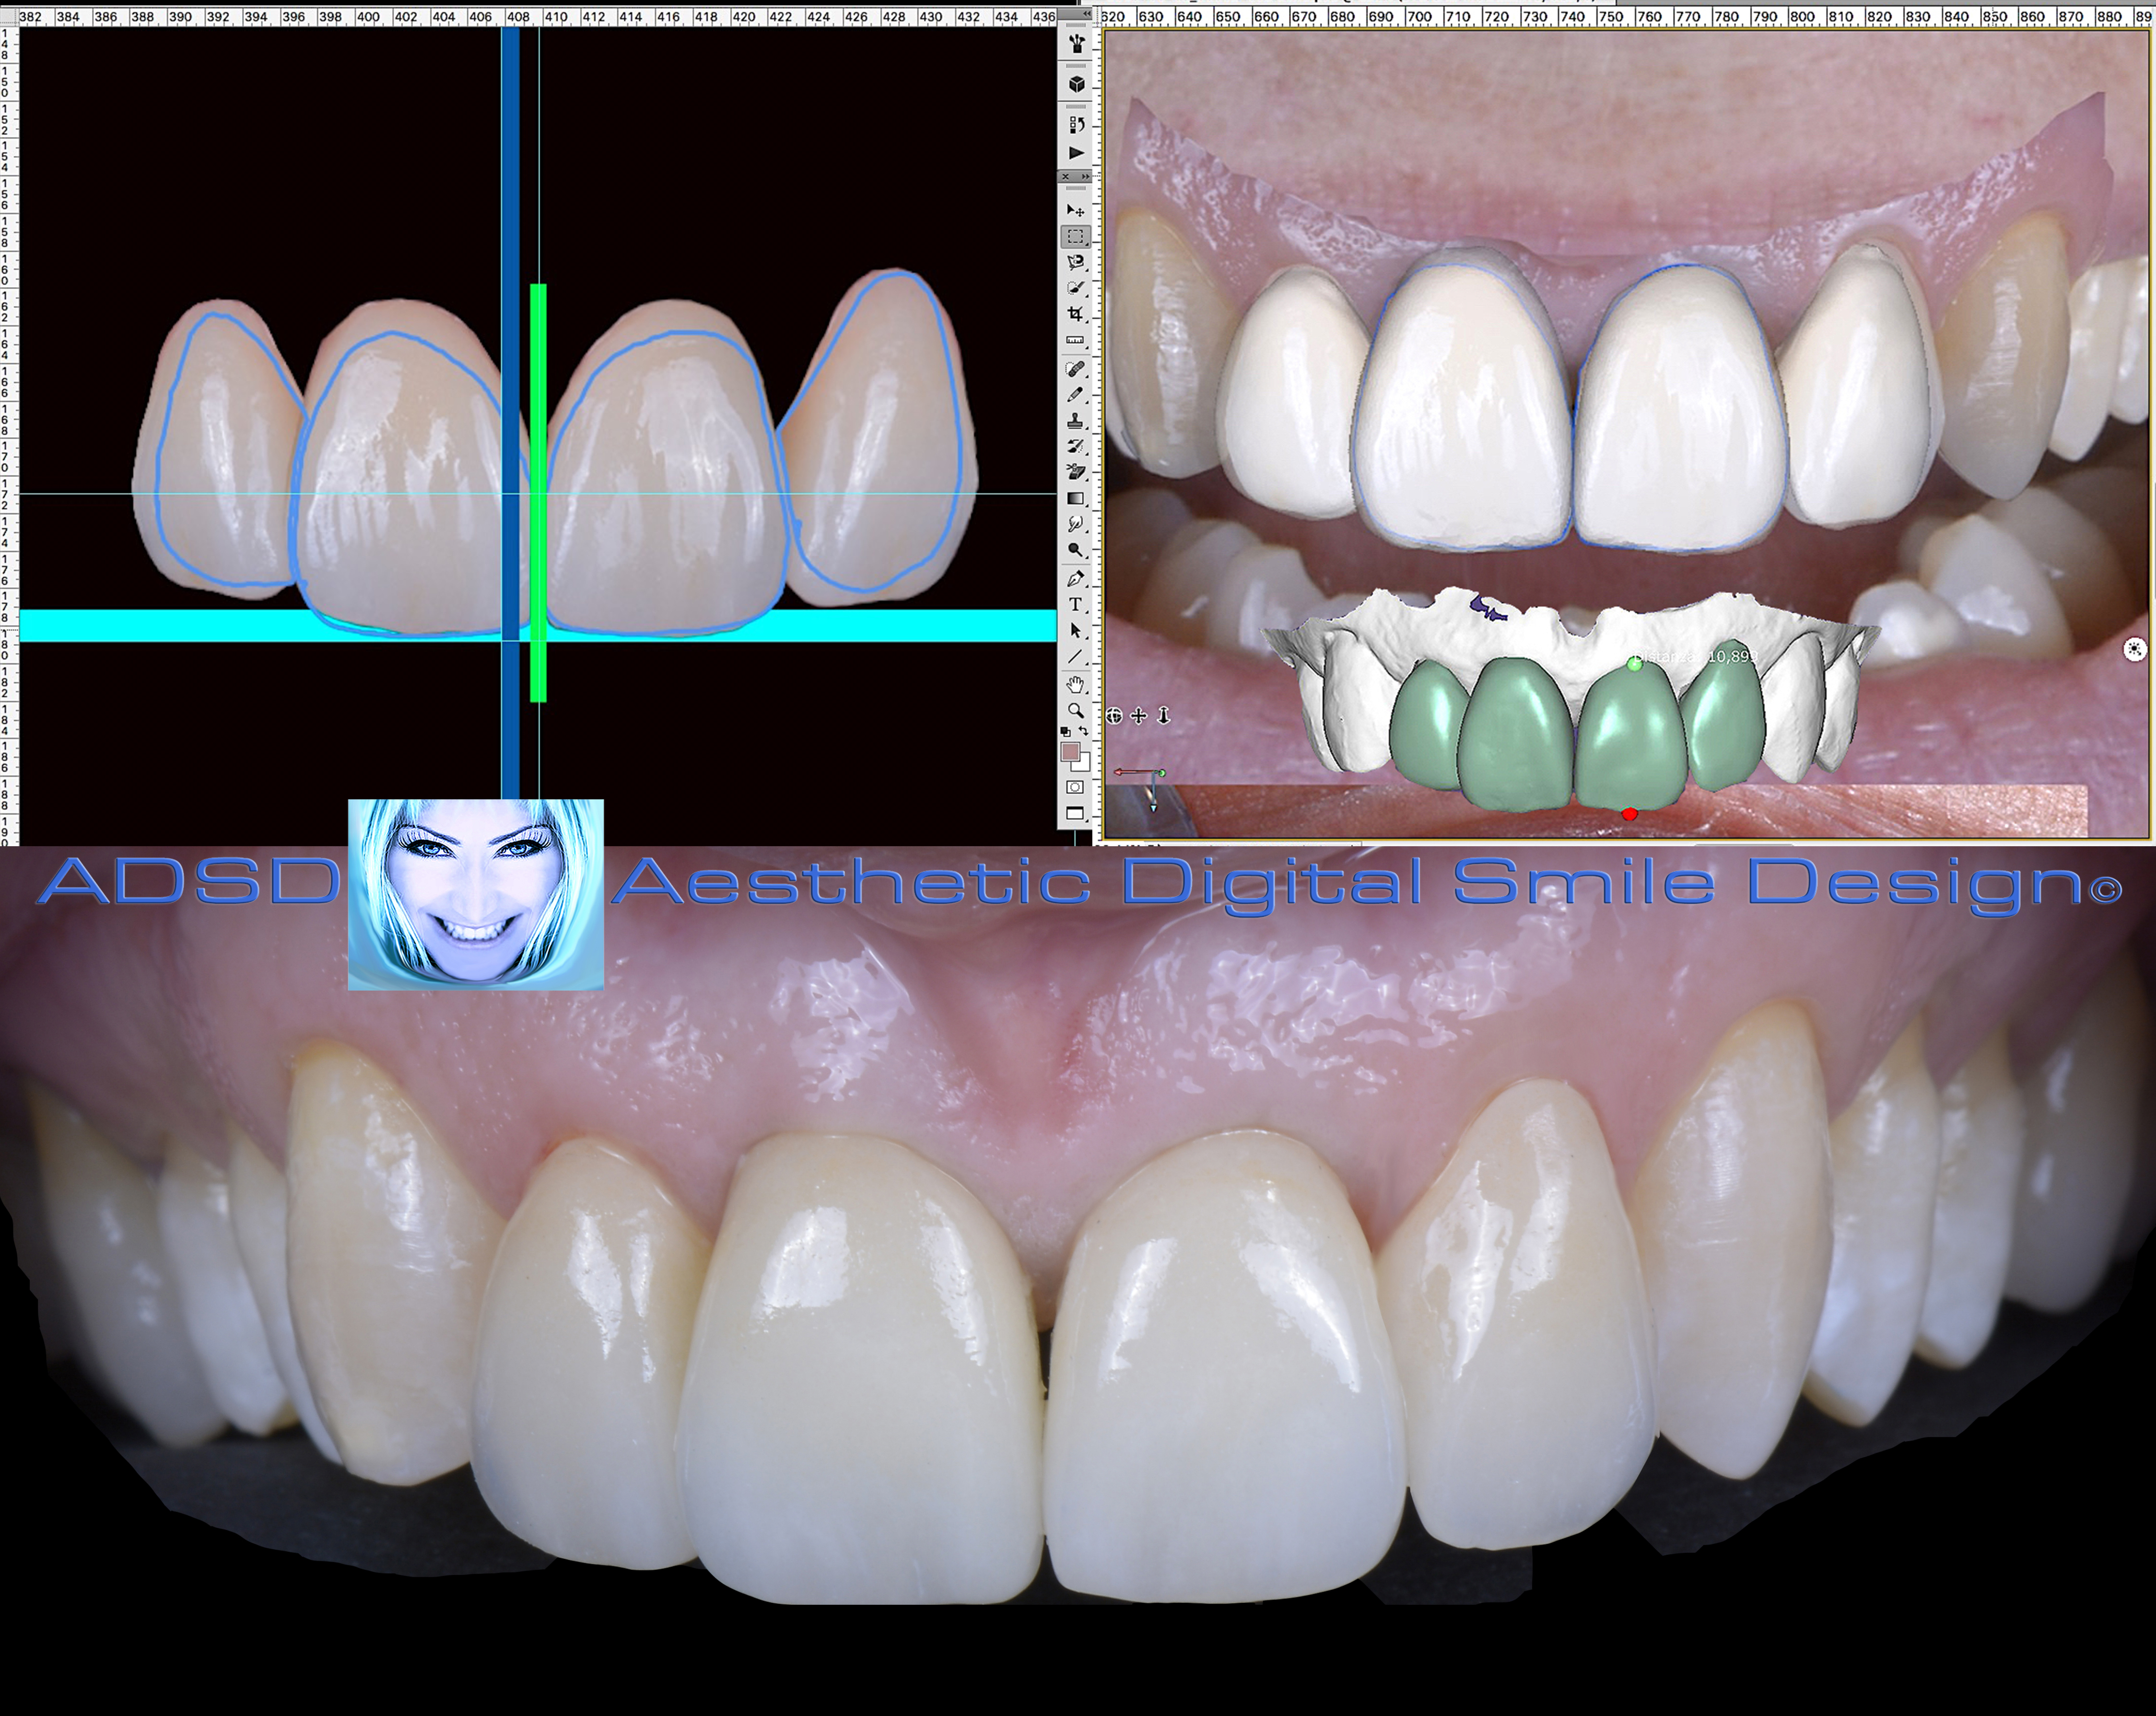 Aesthetic Digital Smile Design ADSD